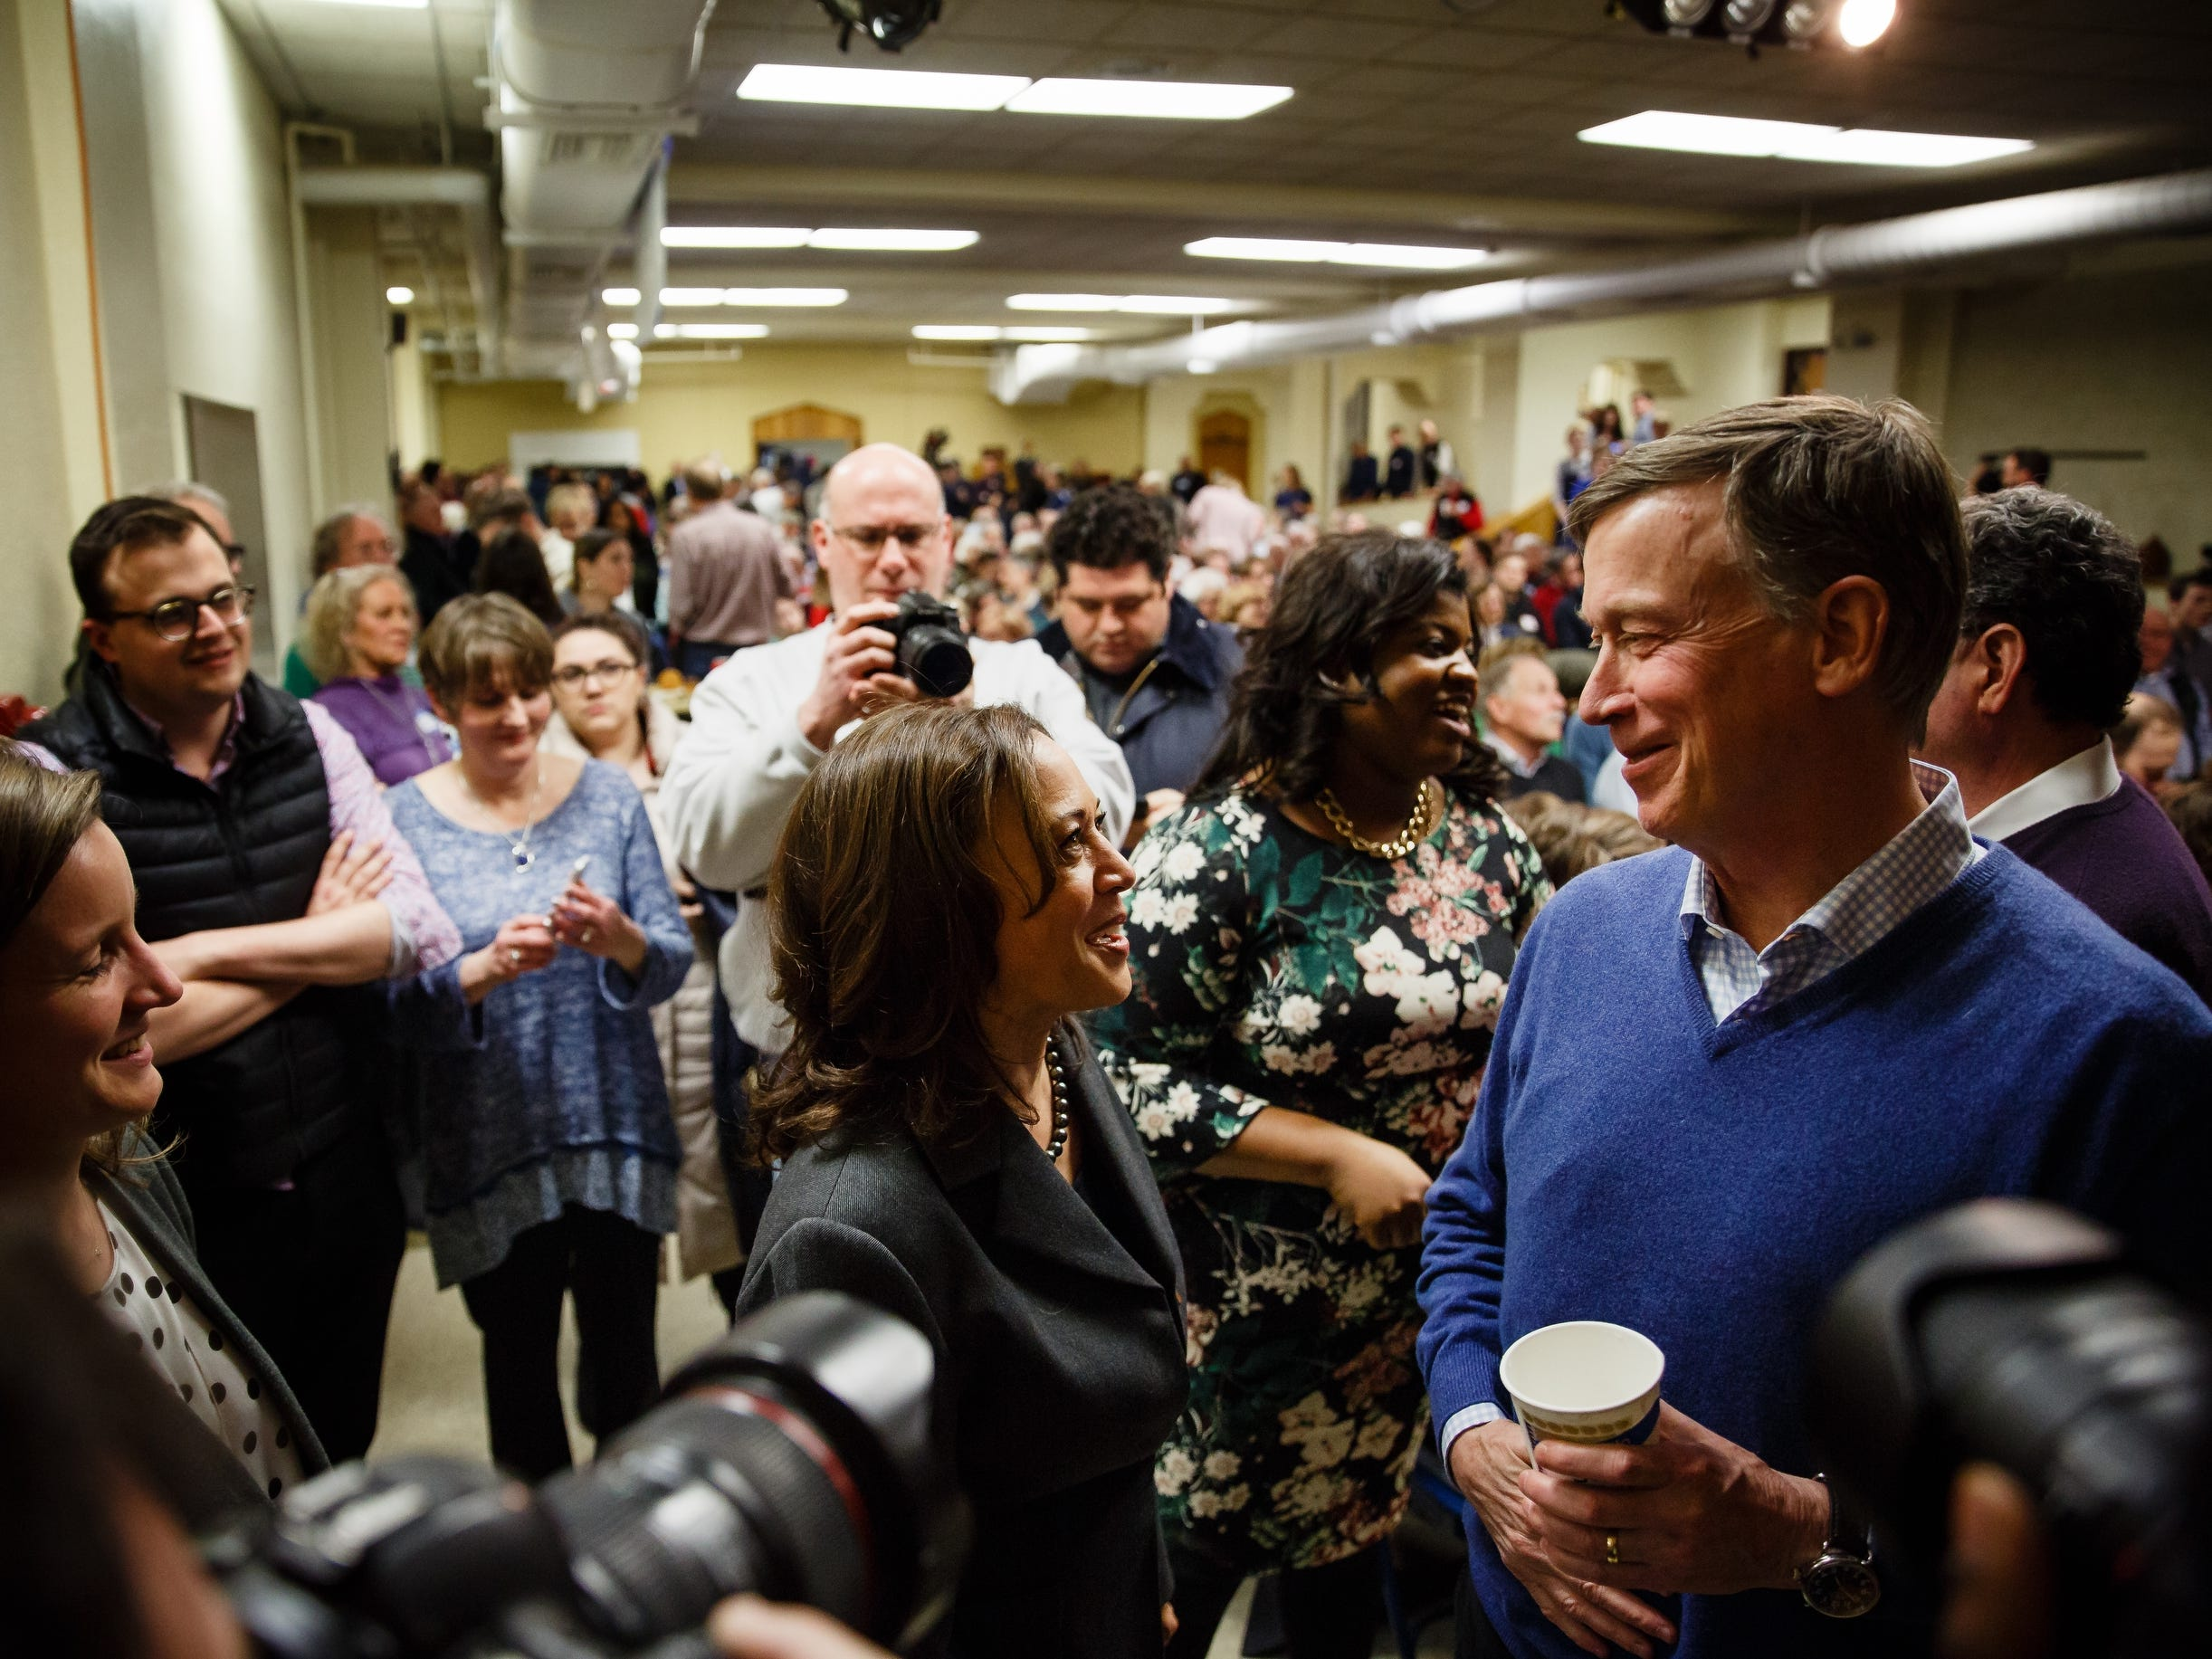 California Sen. Kamala Harris and former Governor of Colorado John Hickenlooper talk before they both speak at the Story County Democrats: Annual Soup Supper Fundraiser on Saturday, Feb. 23, 2019 in Ames.